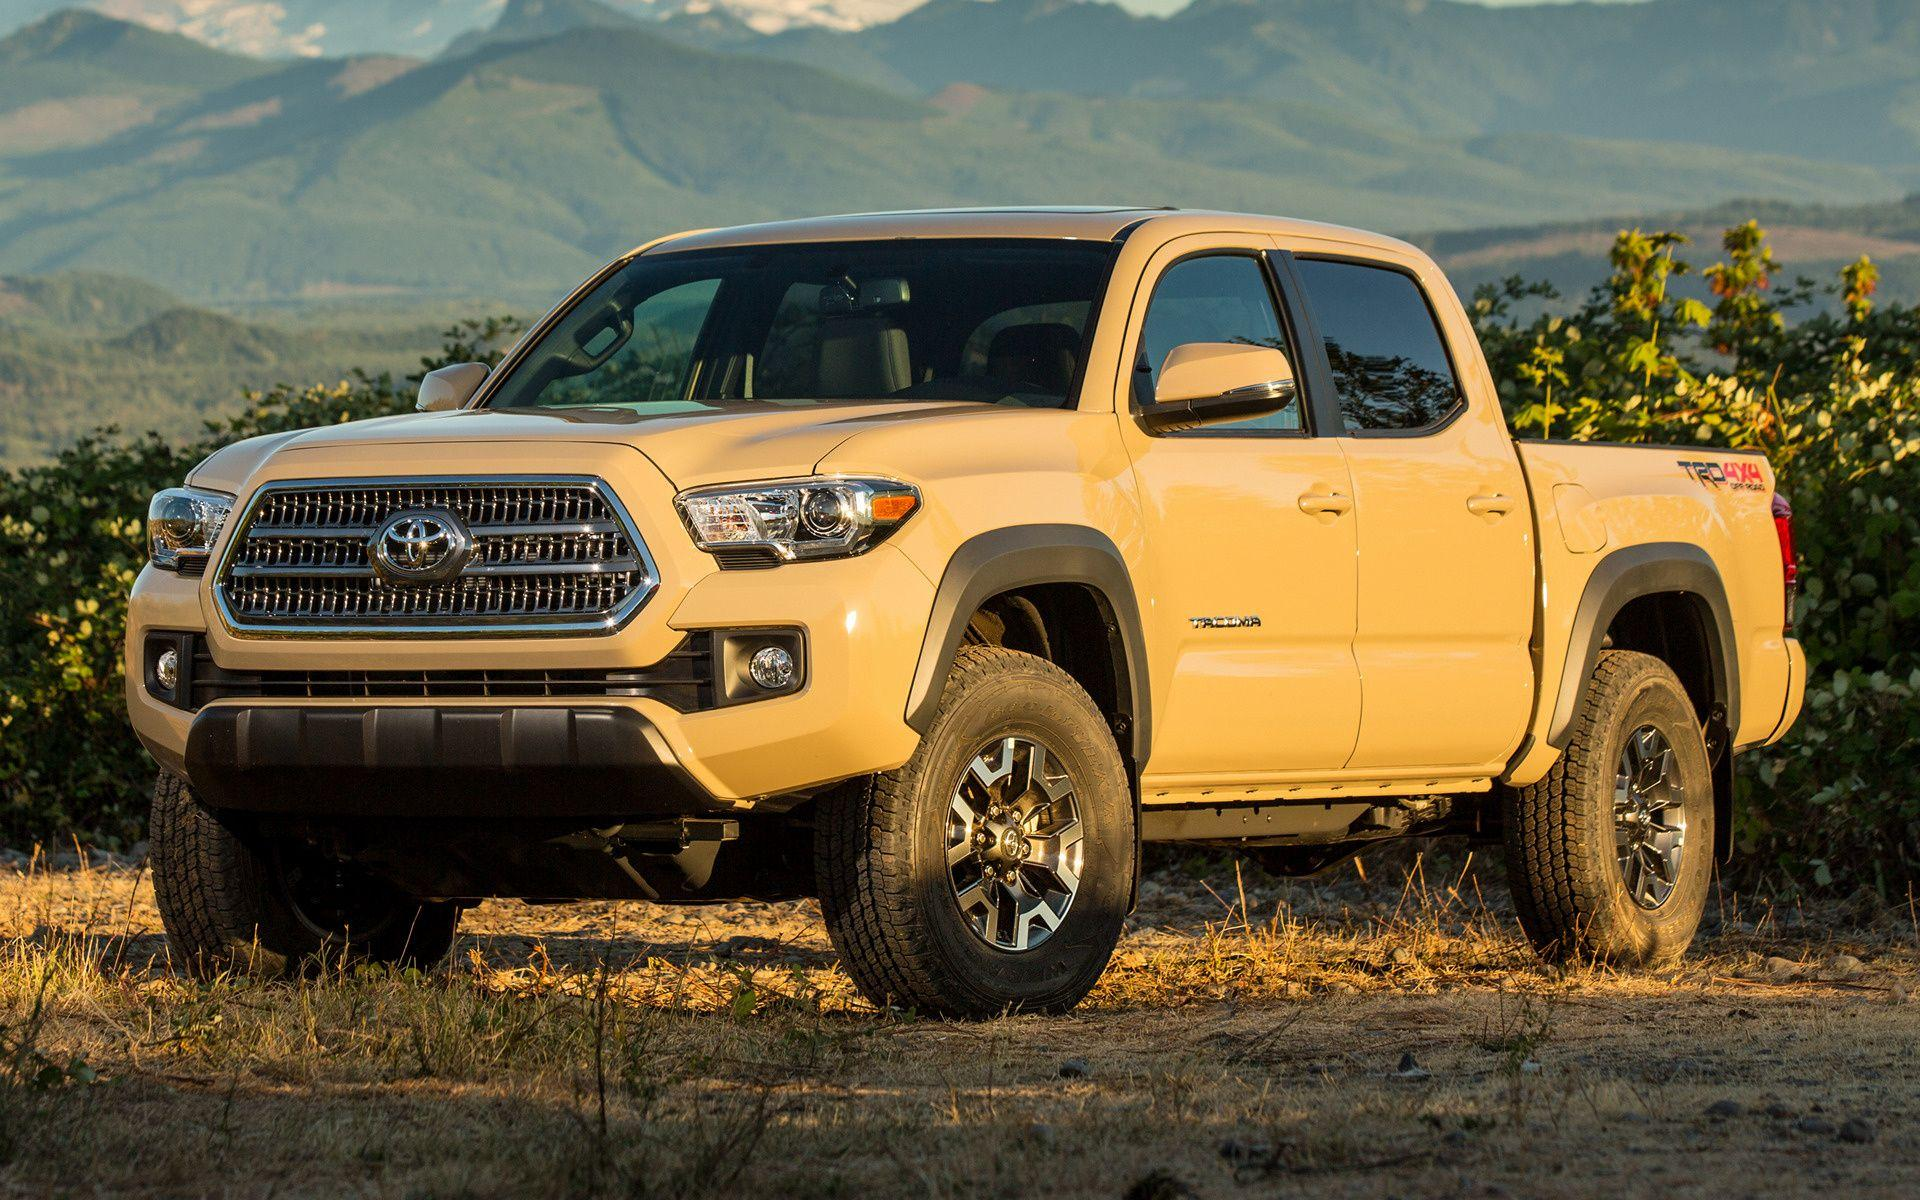 Toyota Tacoma TRD Off-Road Double Cab (2016) Wallpapers and HD ...